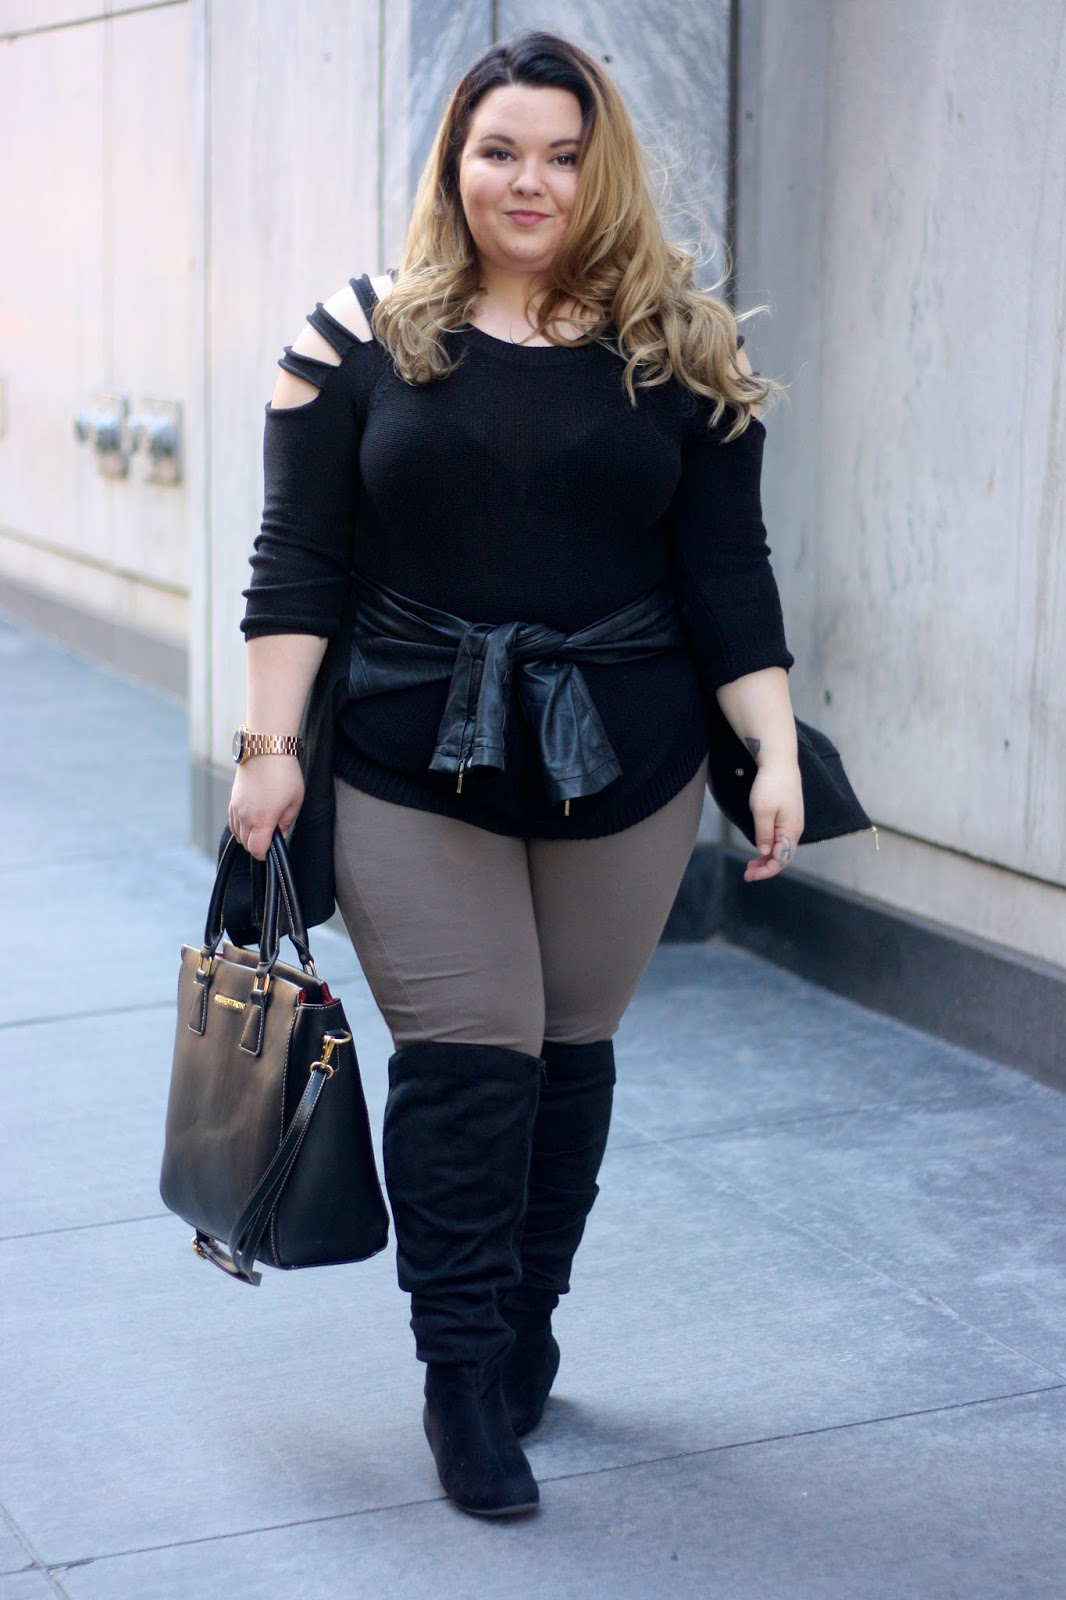 plus size knee high boots, CUT OUT SHOULDERS, plus size sweaters, leather tie waist, leather jacket around waist, beige leggings, plus size fashion, natalie craig, natalie in the city, cut out sweaters, fashion blogger, quay eyewear, quay